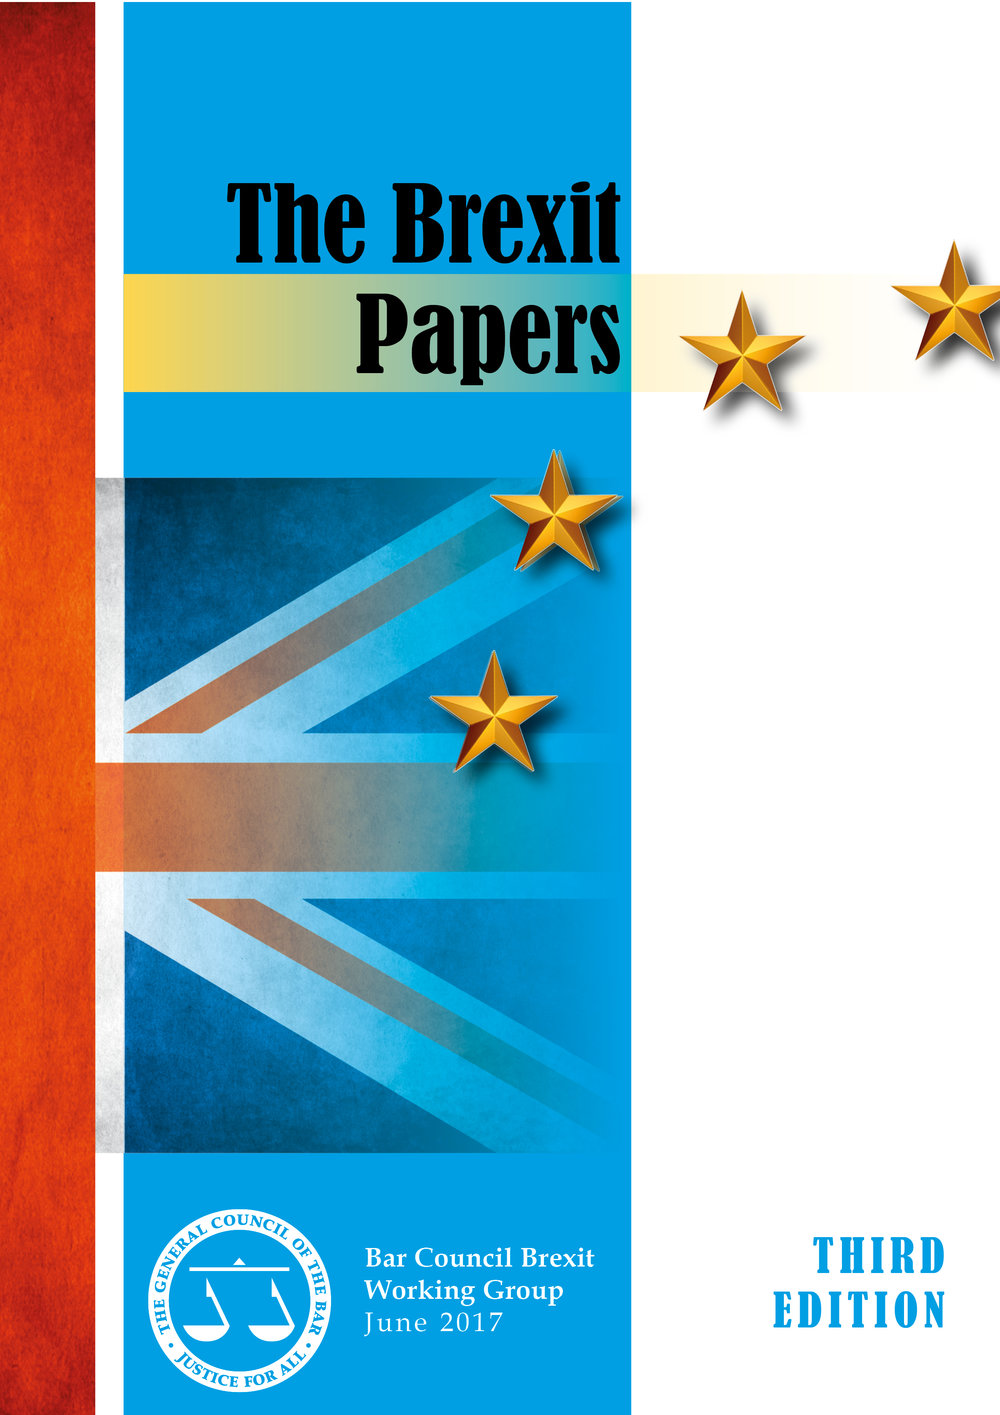 Brexit Papers 3 front cover 1 low res.jpg